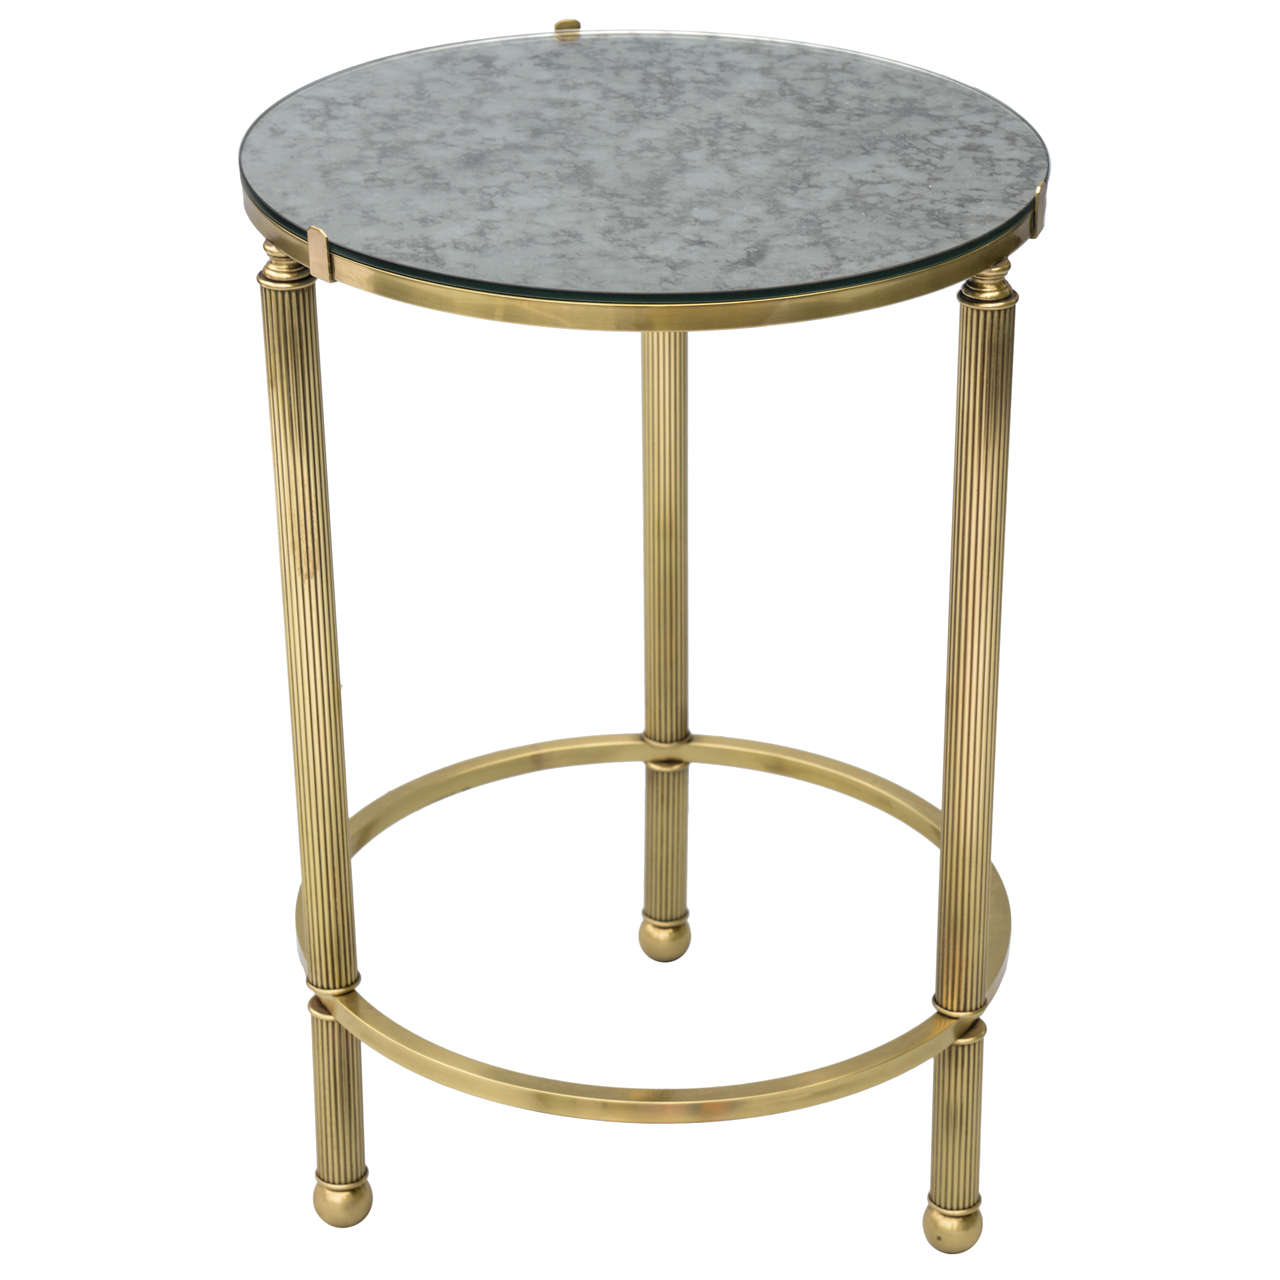 round brass accent table with mirrored top inch high designer glass coffee tables black contemporary end folding sides purple butterfly lamp dark wood nest marble moroccan tile